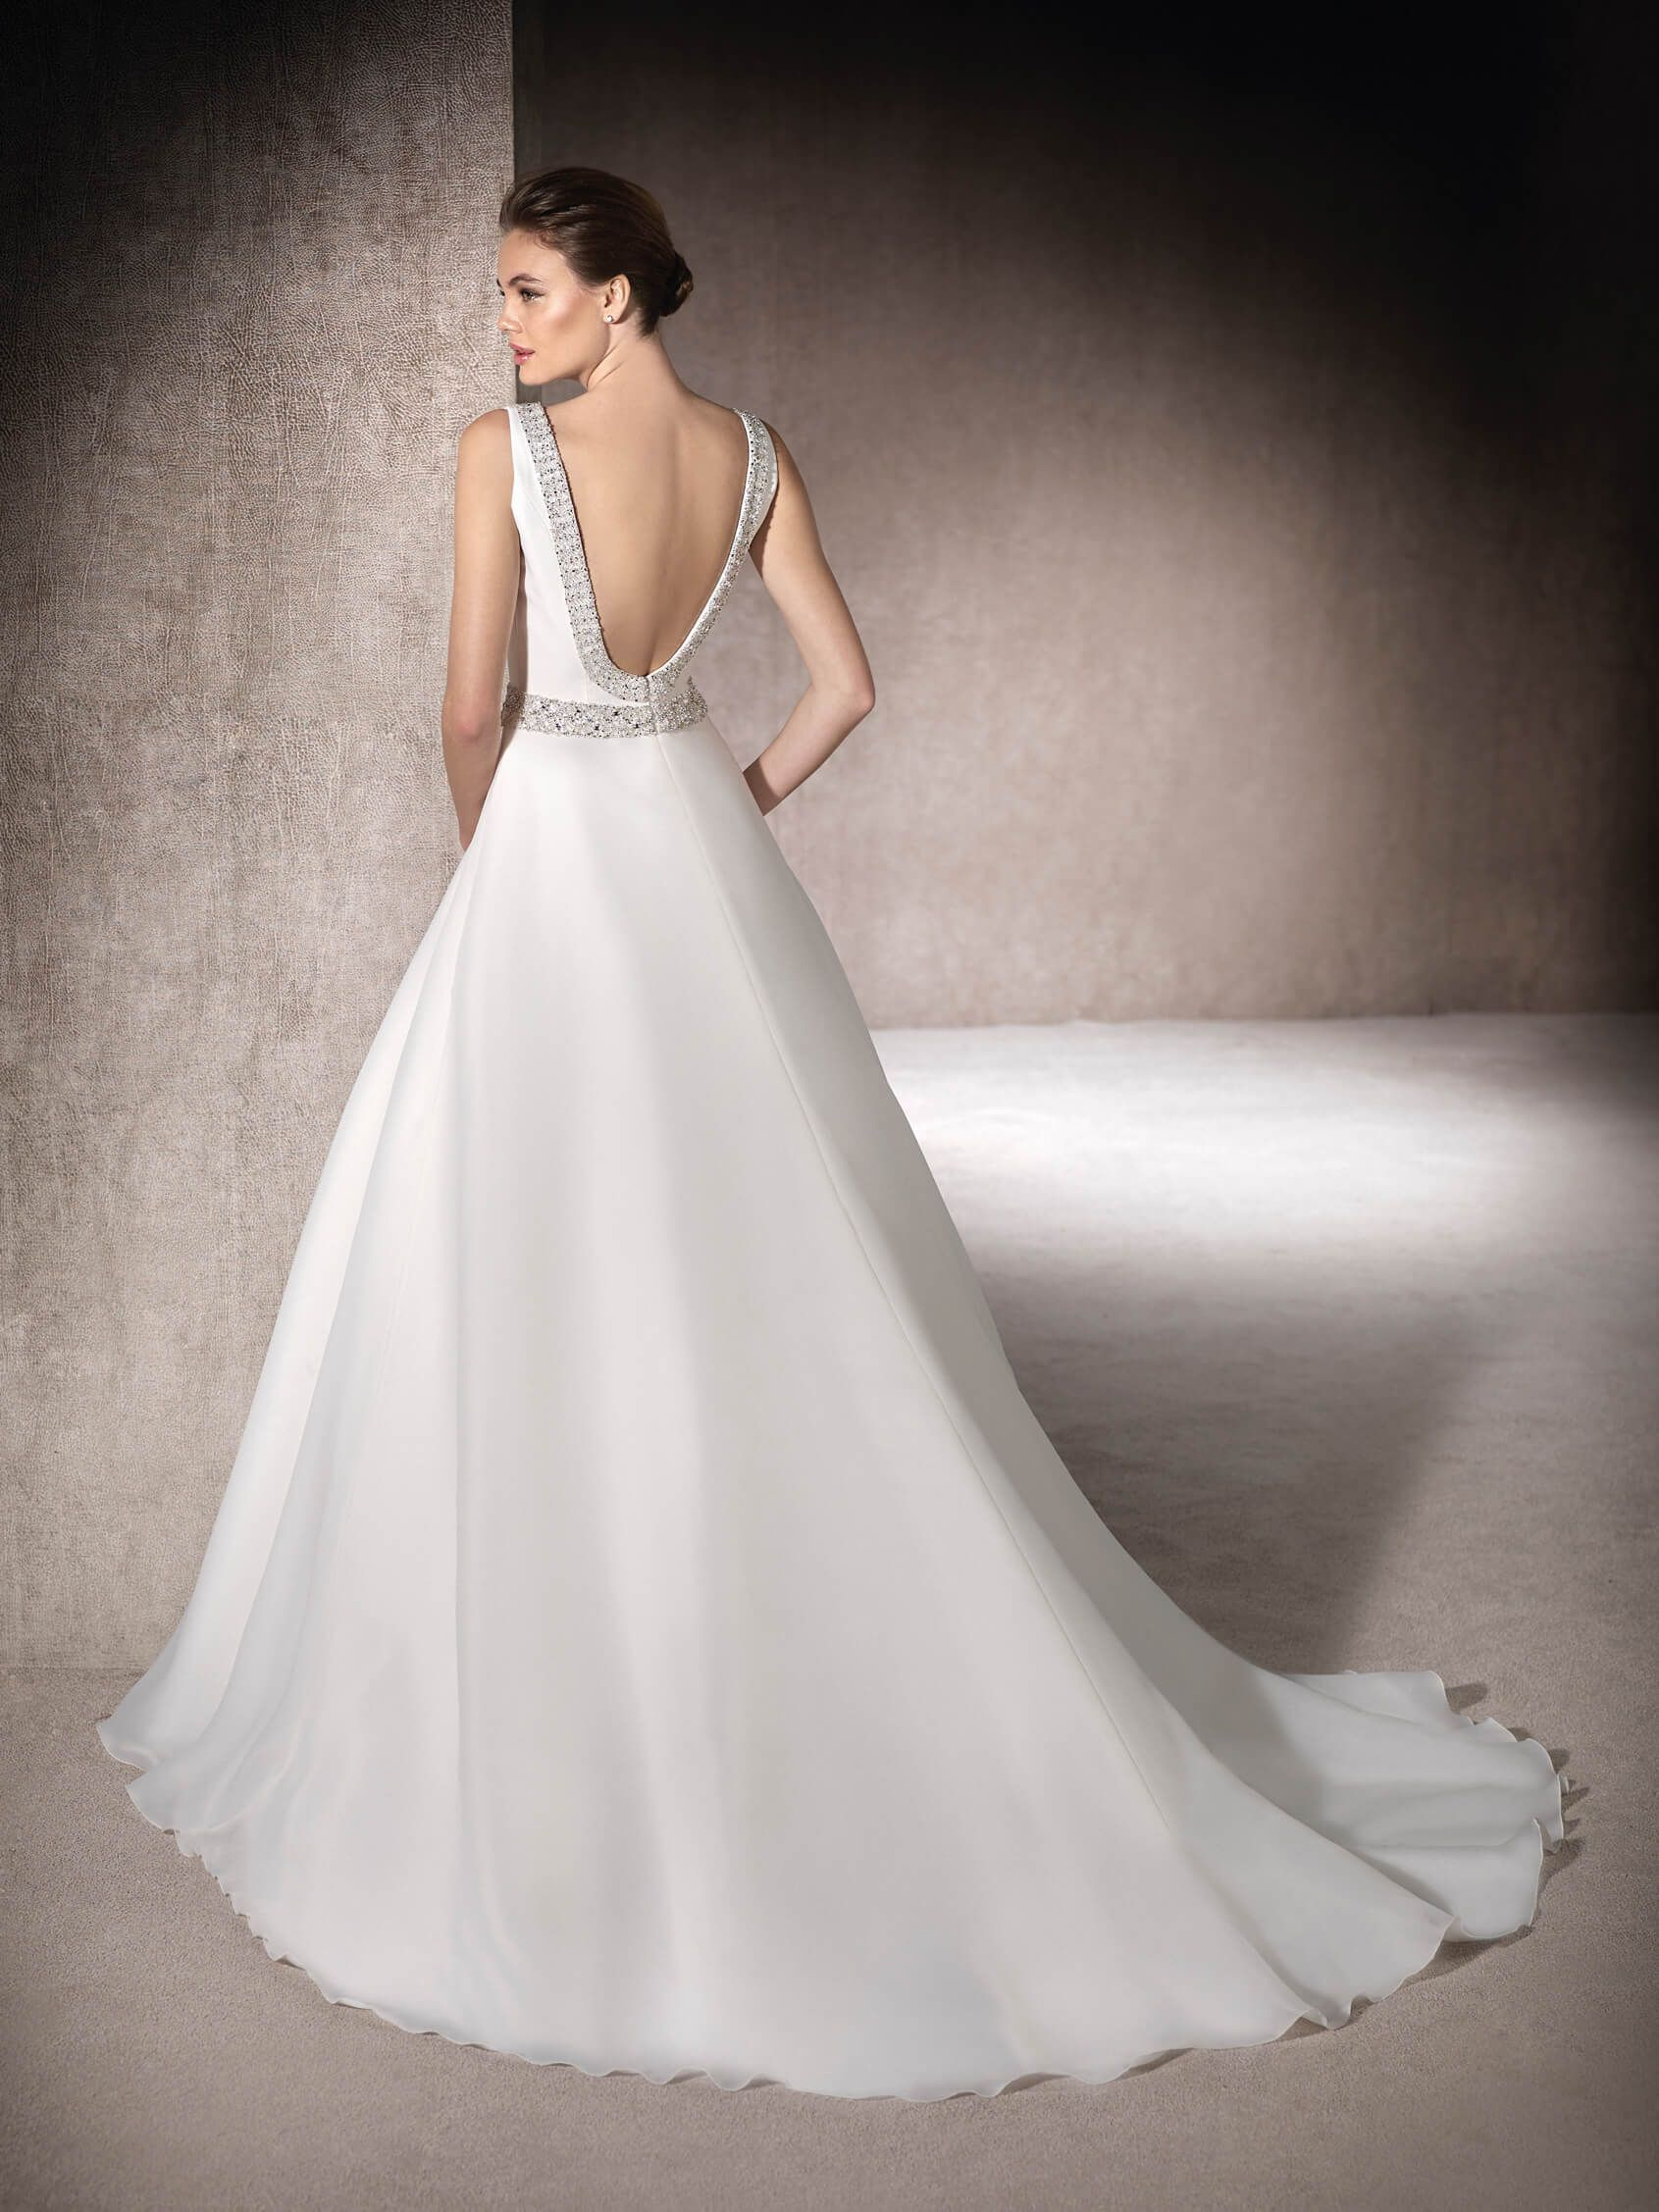 MELBA - Princess wedding dress in garza and gemstone embroidery | St ...